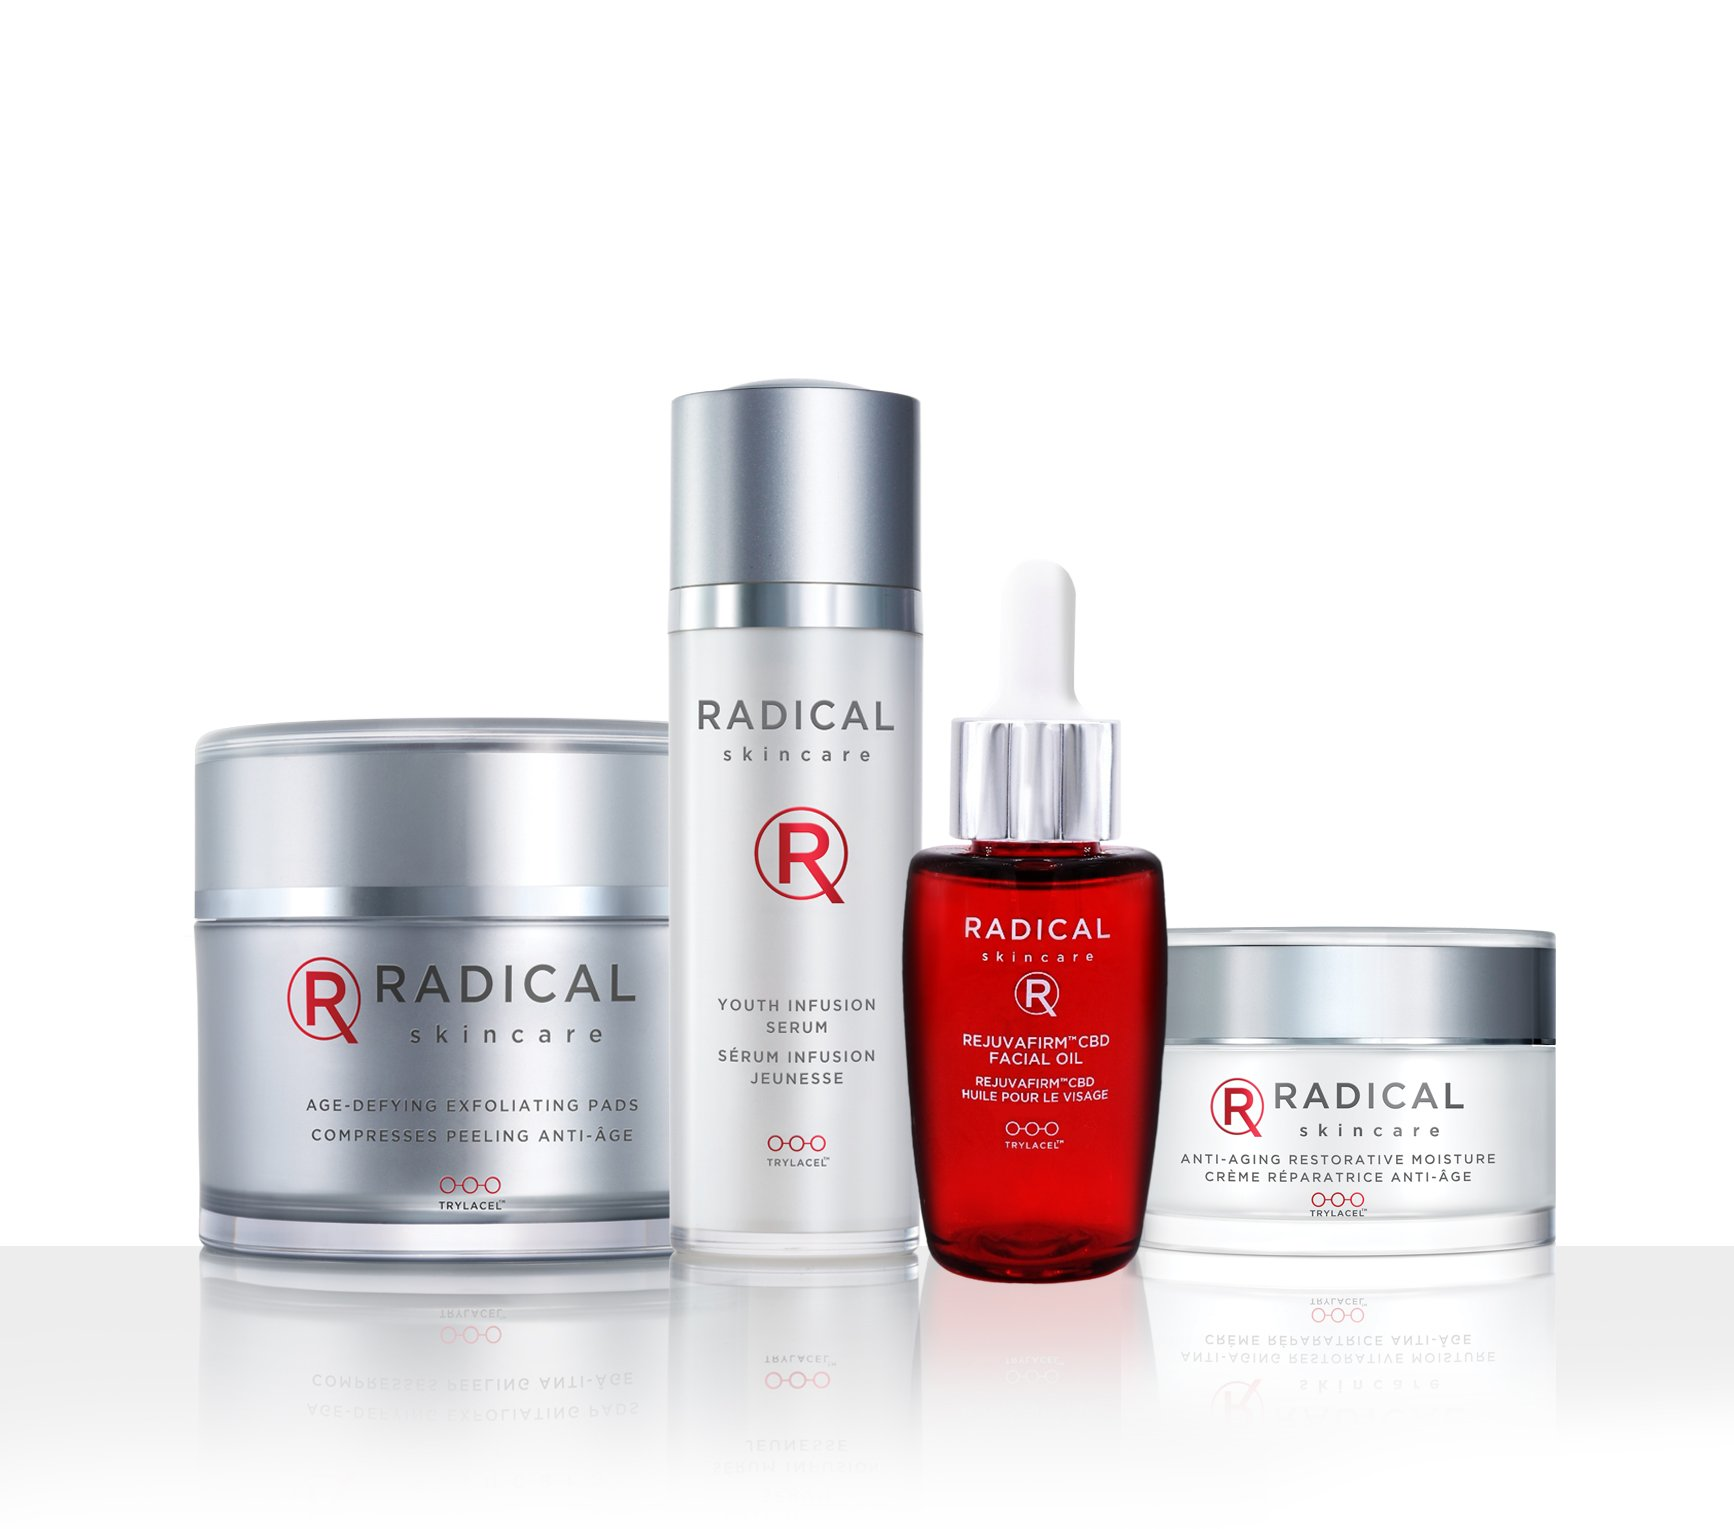 Radical Rescue for Acne